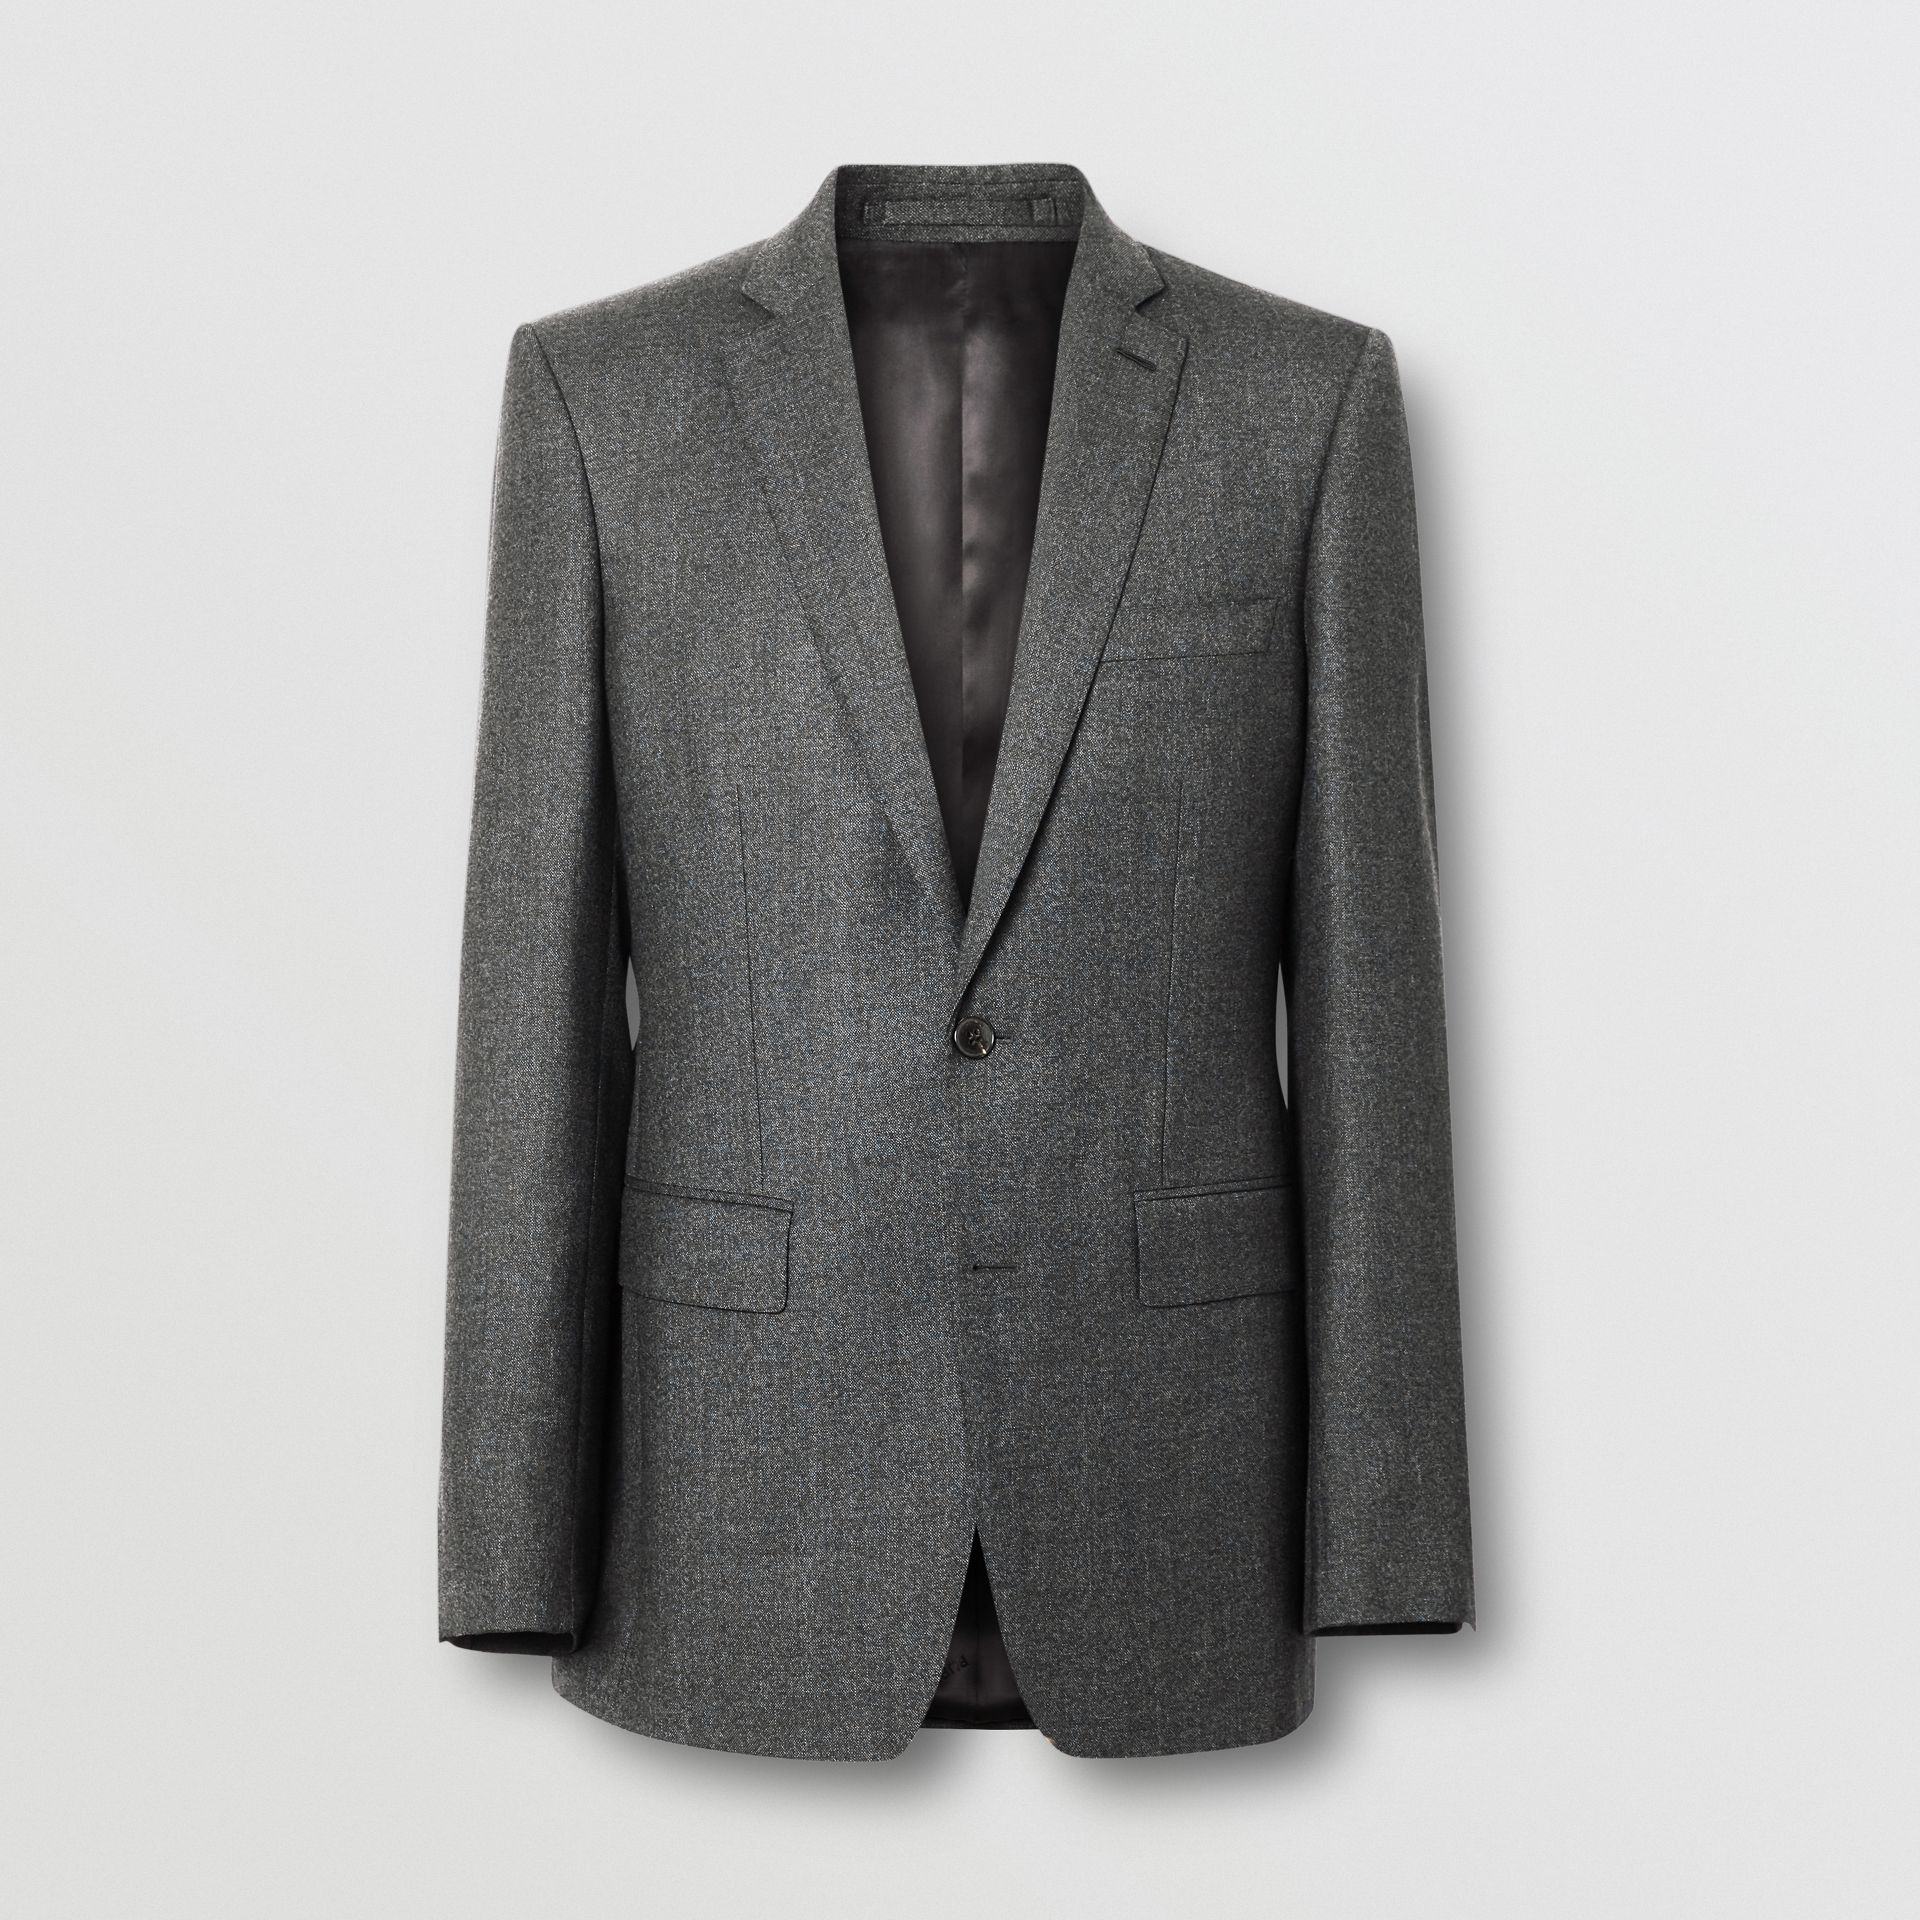 English Fit Sharkskin Wool Suit in Black Melange - Men | Burberry United Kingdom - gallery image 3